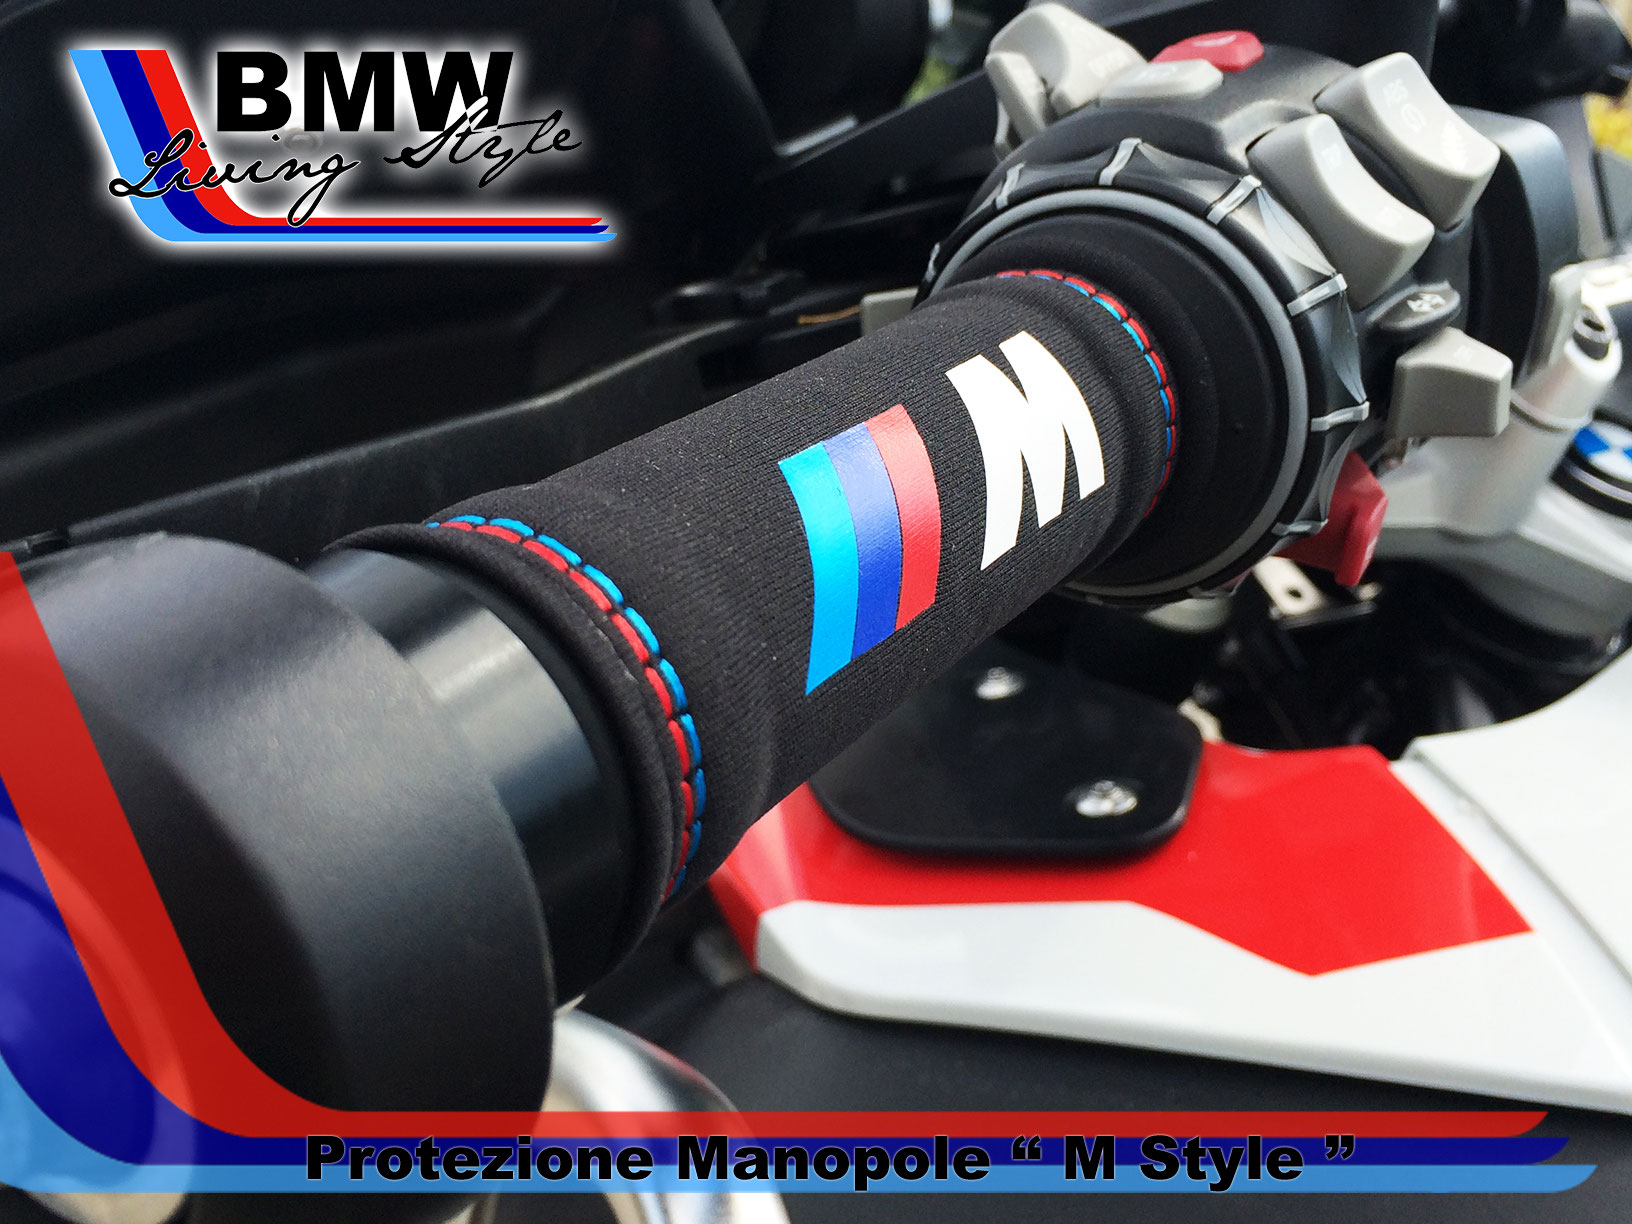 www.bmwlivingstyle.com